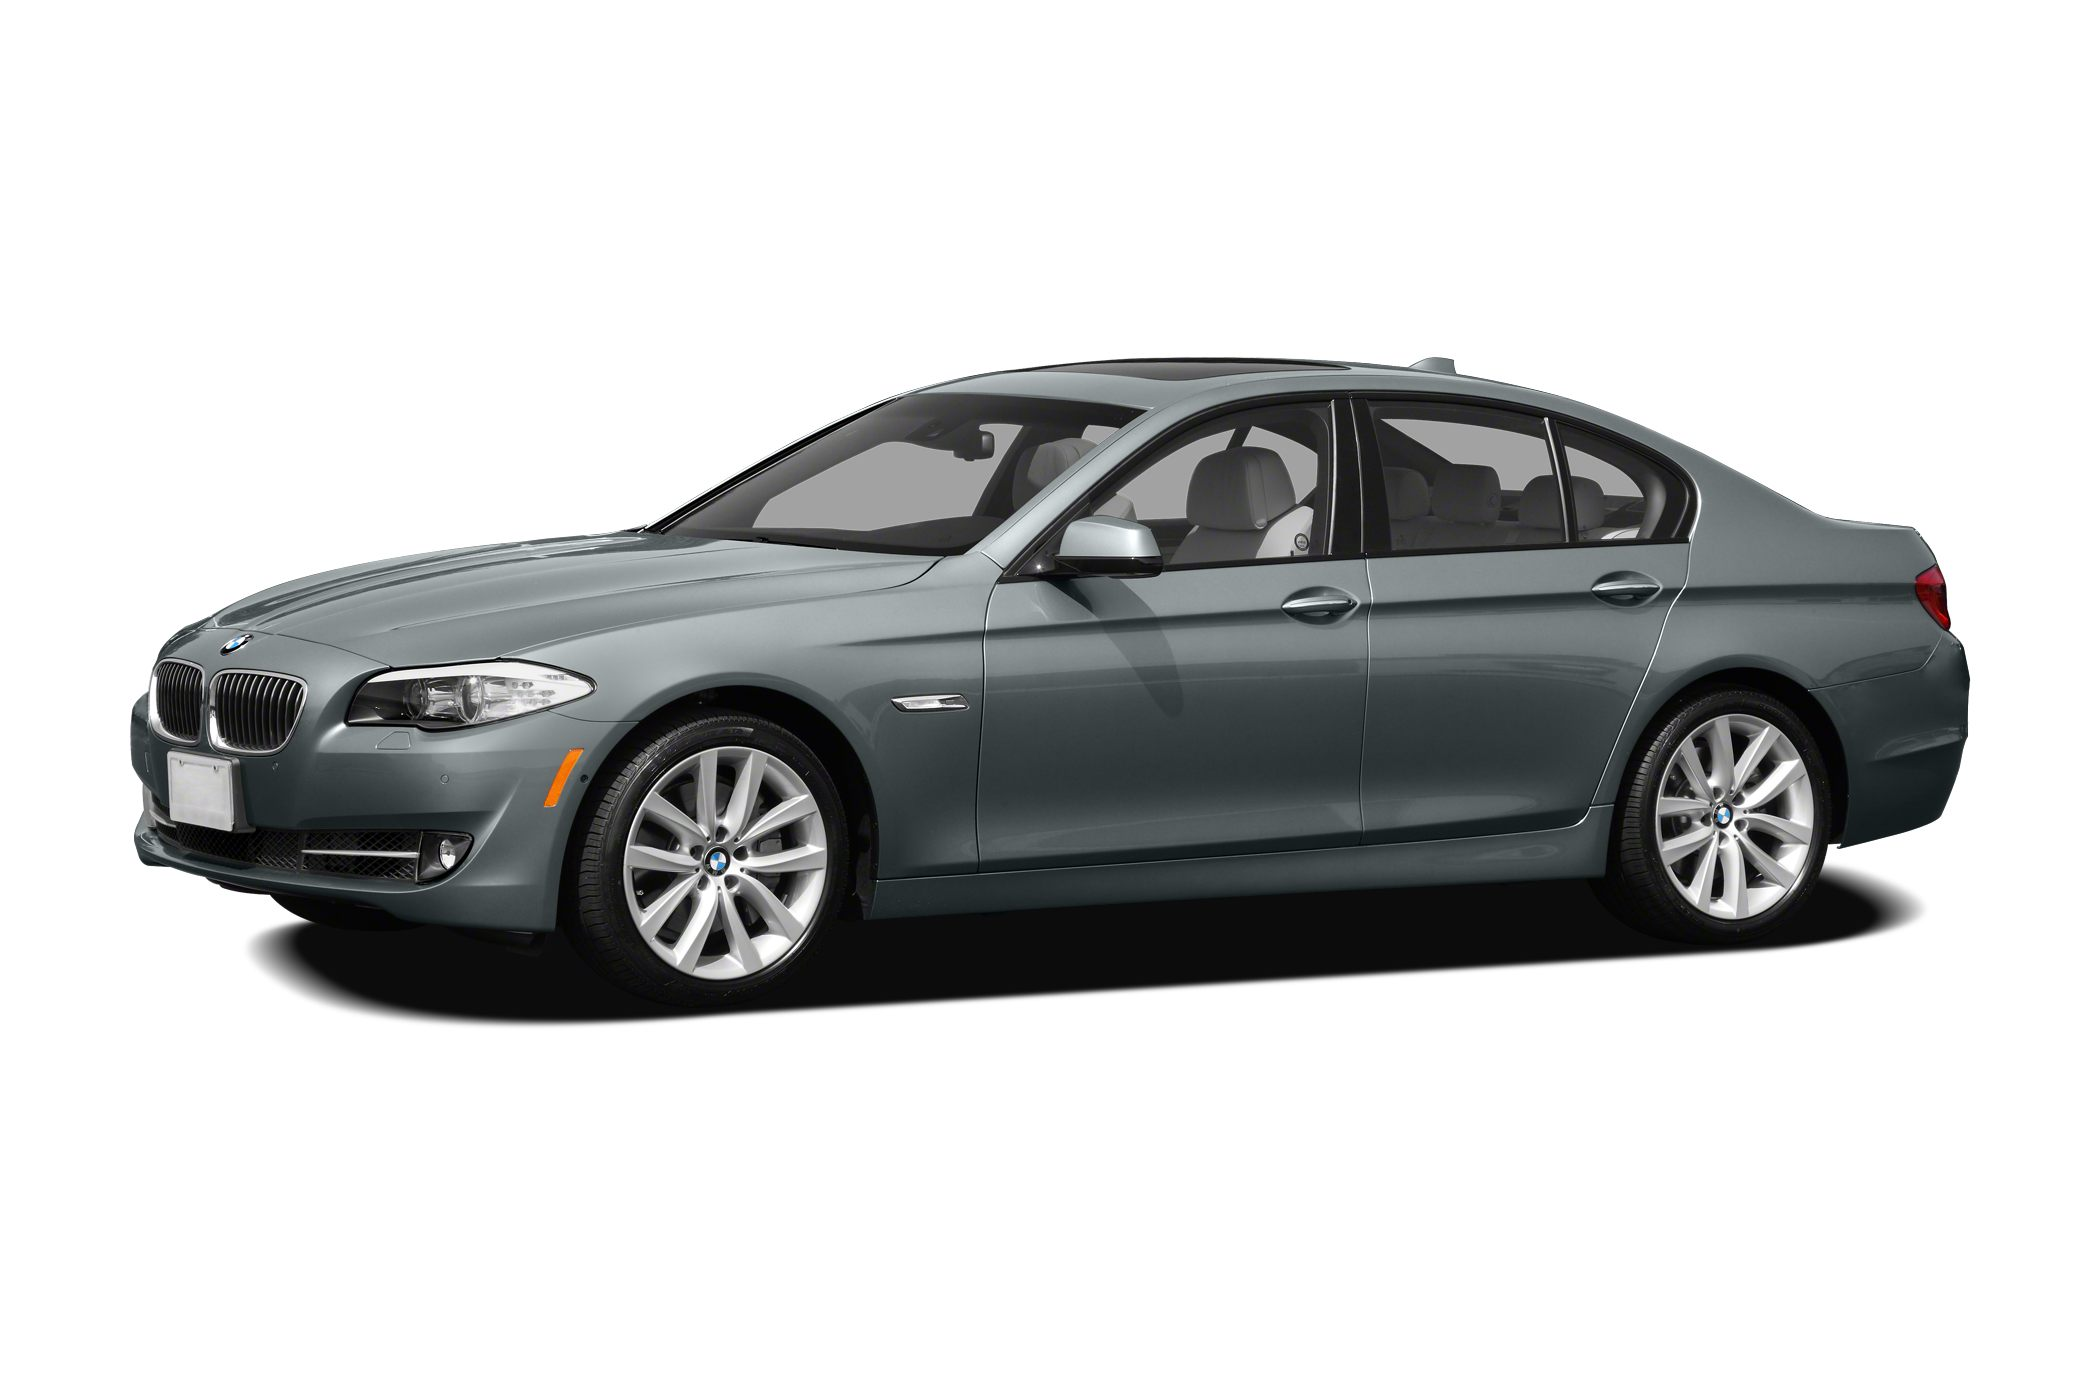 2012 BMW 528 I XDrive Sedan for sale in Mechanicsburg for $38,243 with 28,871 miles